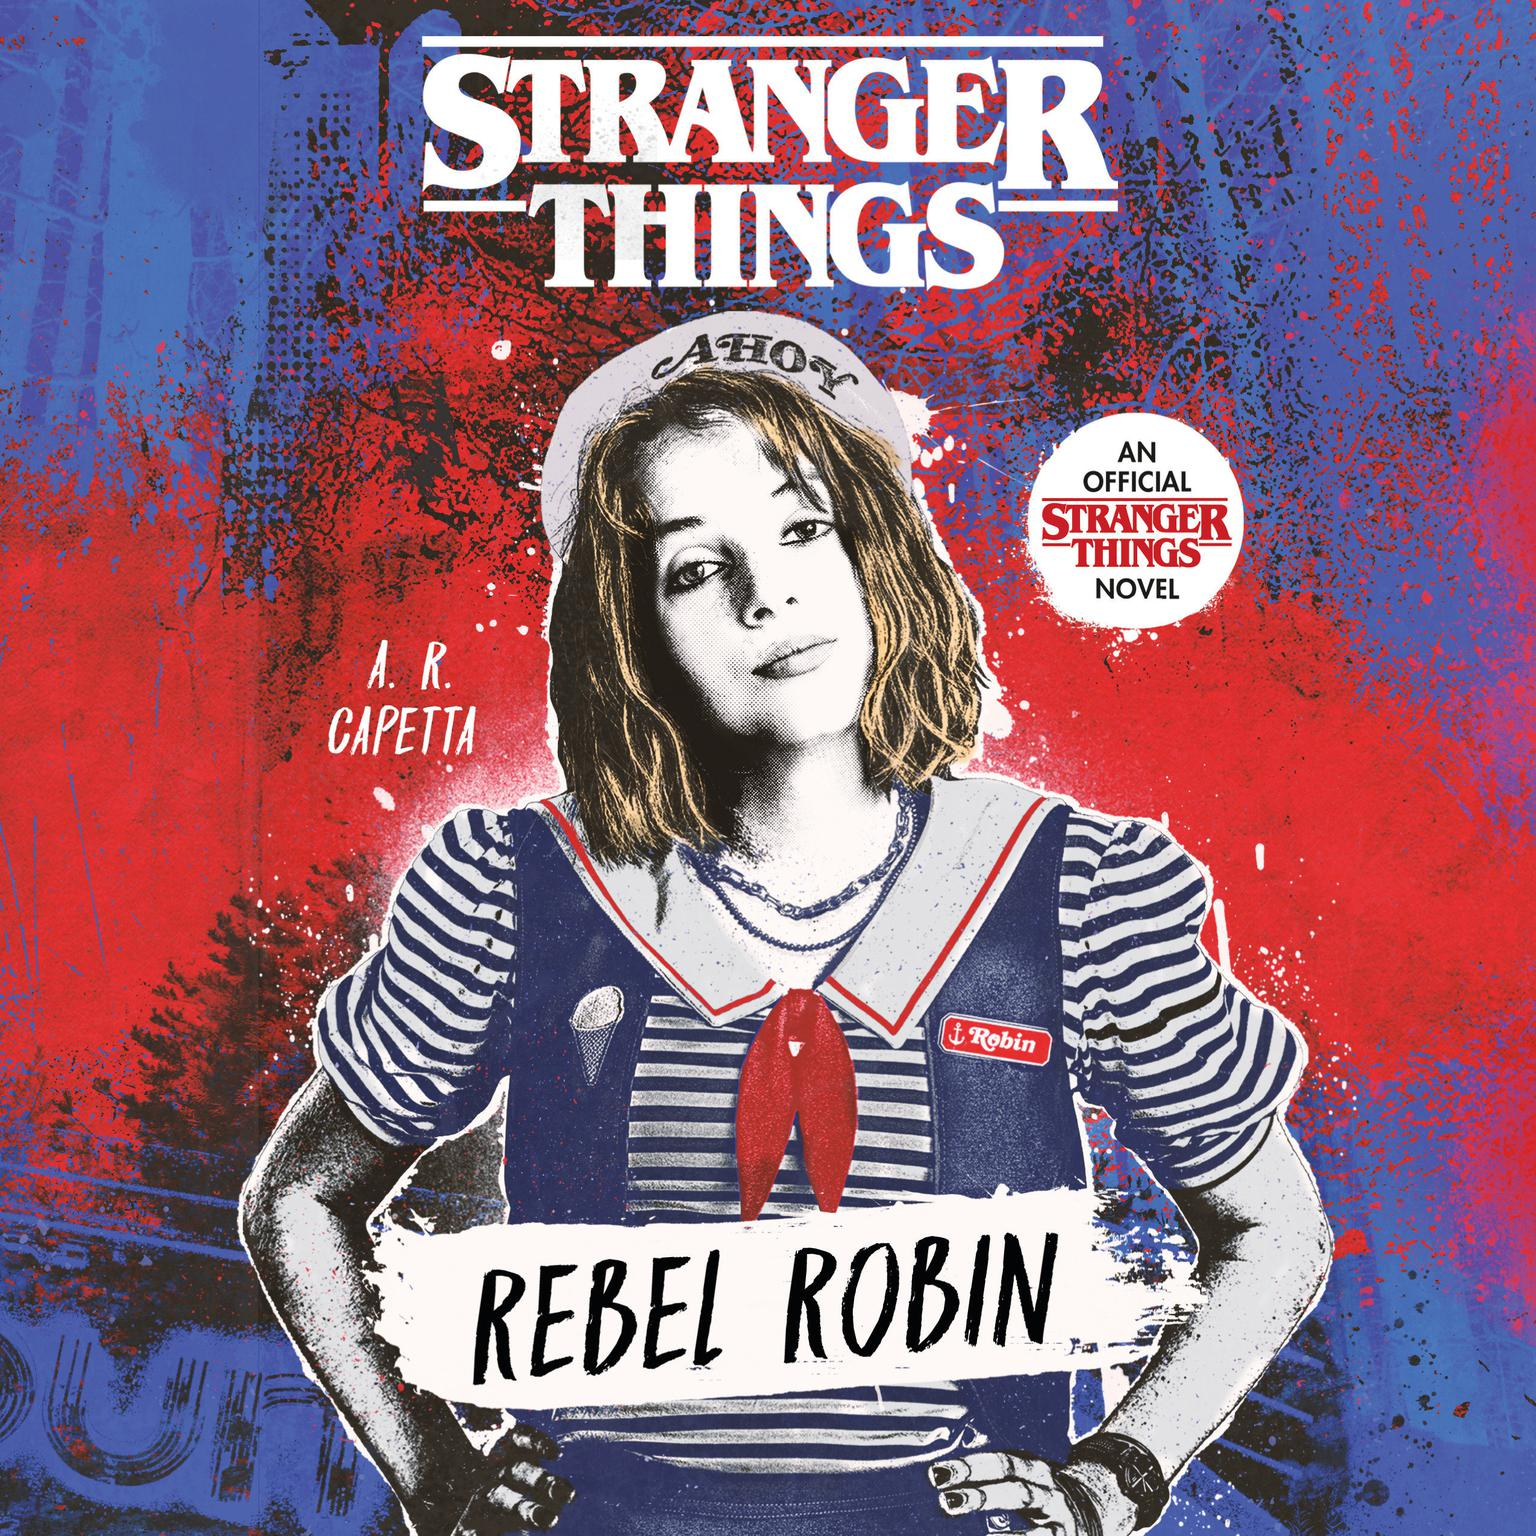 Stranger Things: Rebel Robin Audiobook, by A. R. Capetta